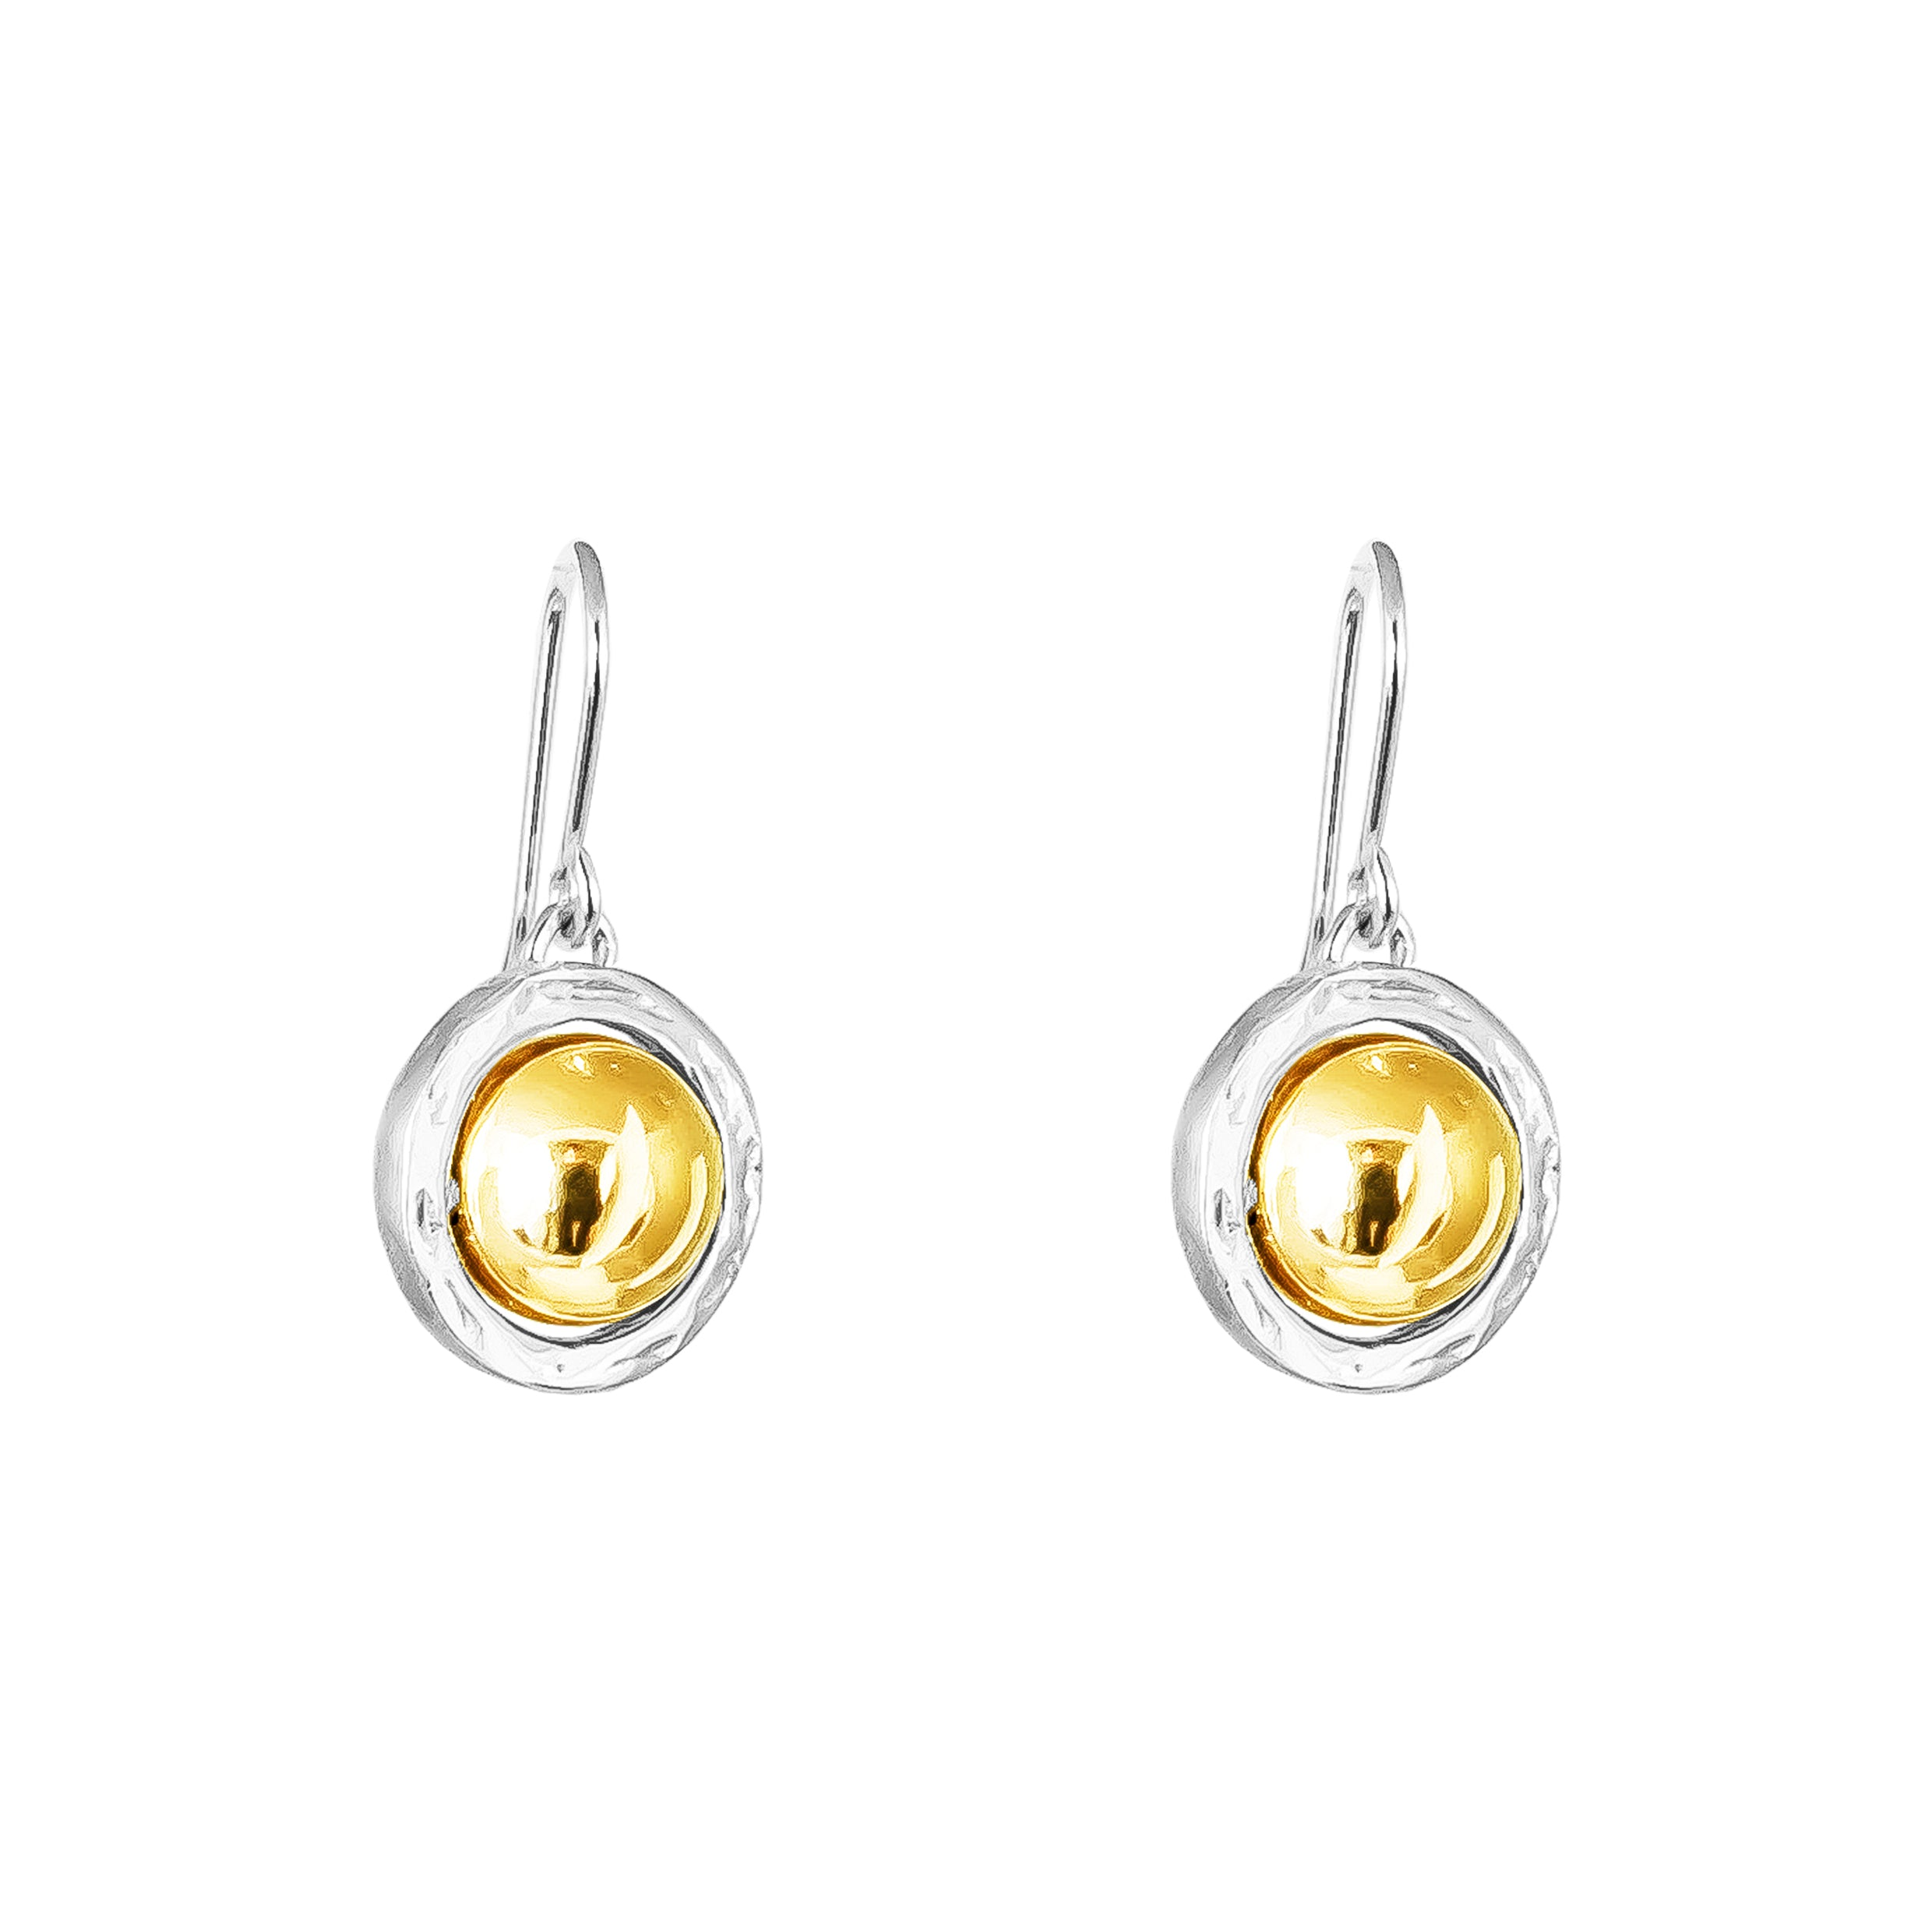 Atticus Large Drop Earrings | Polished Gold Detail